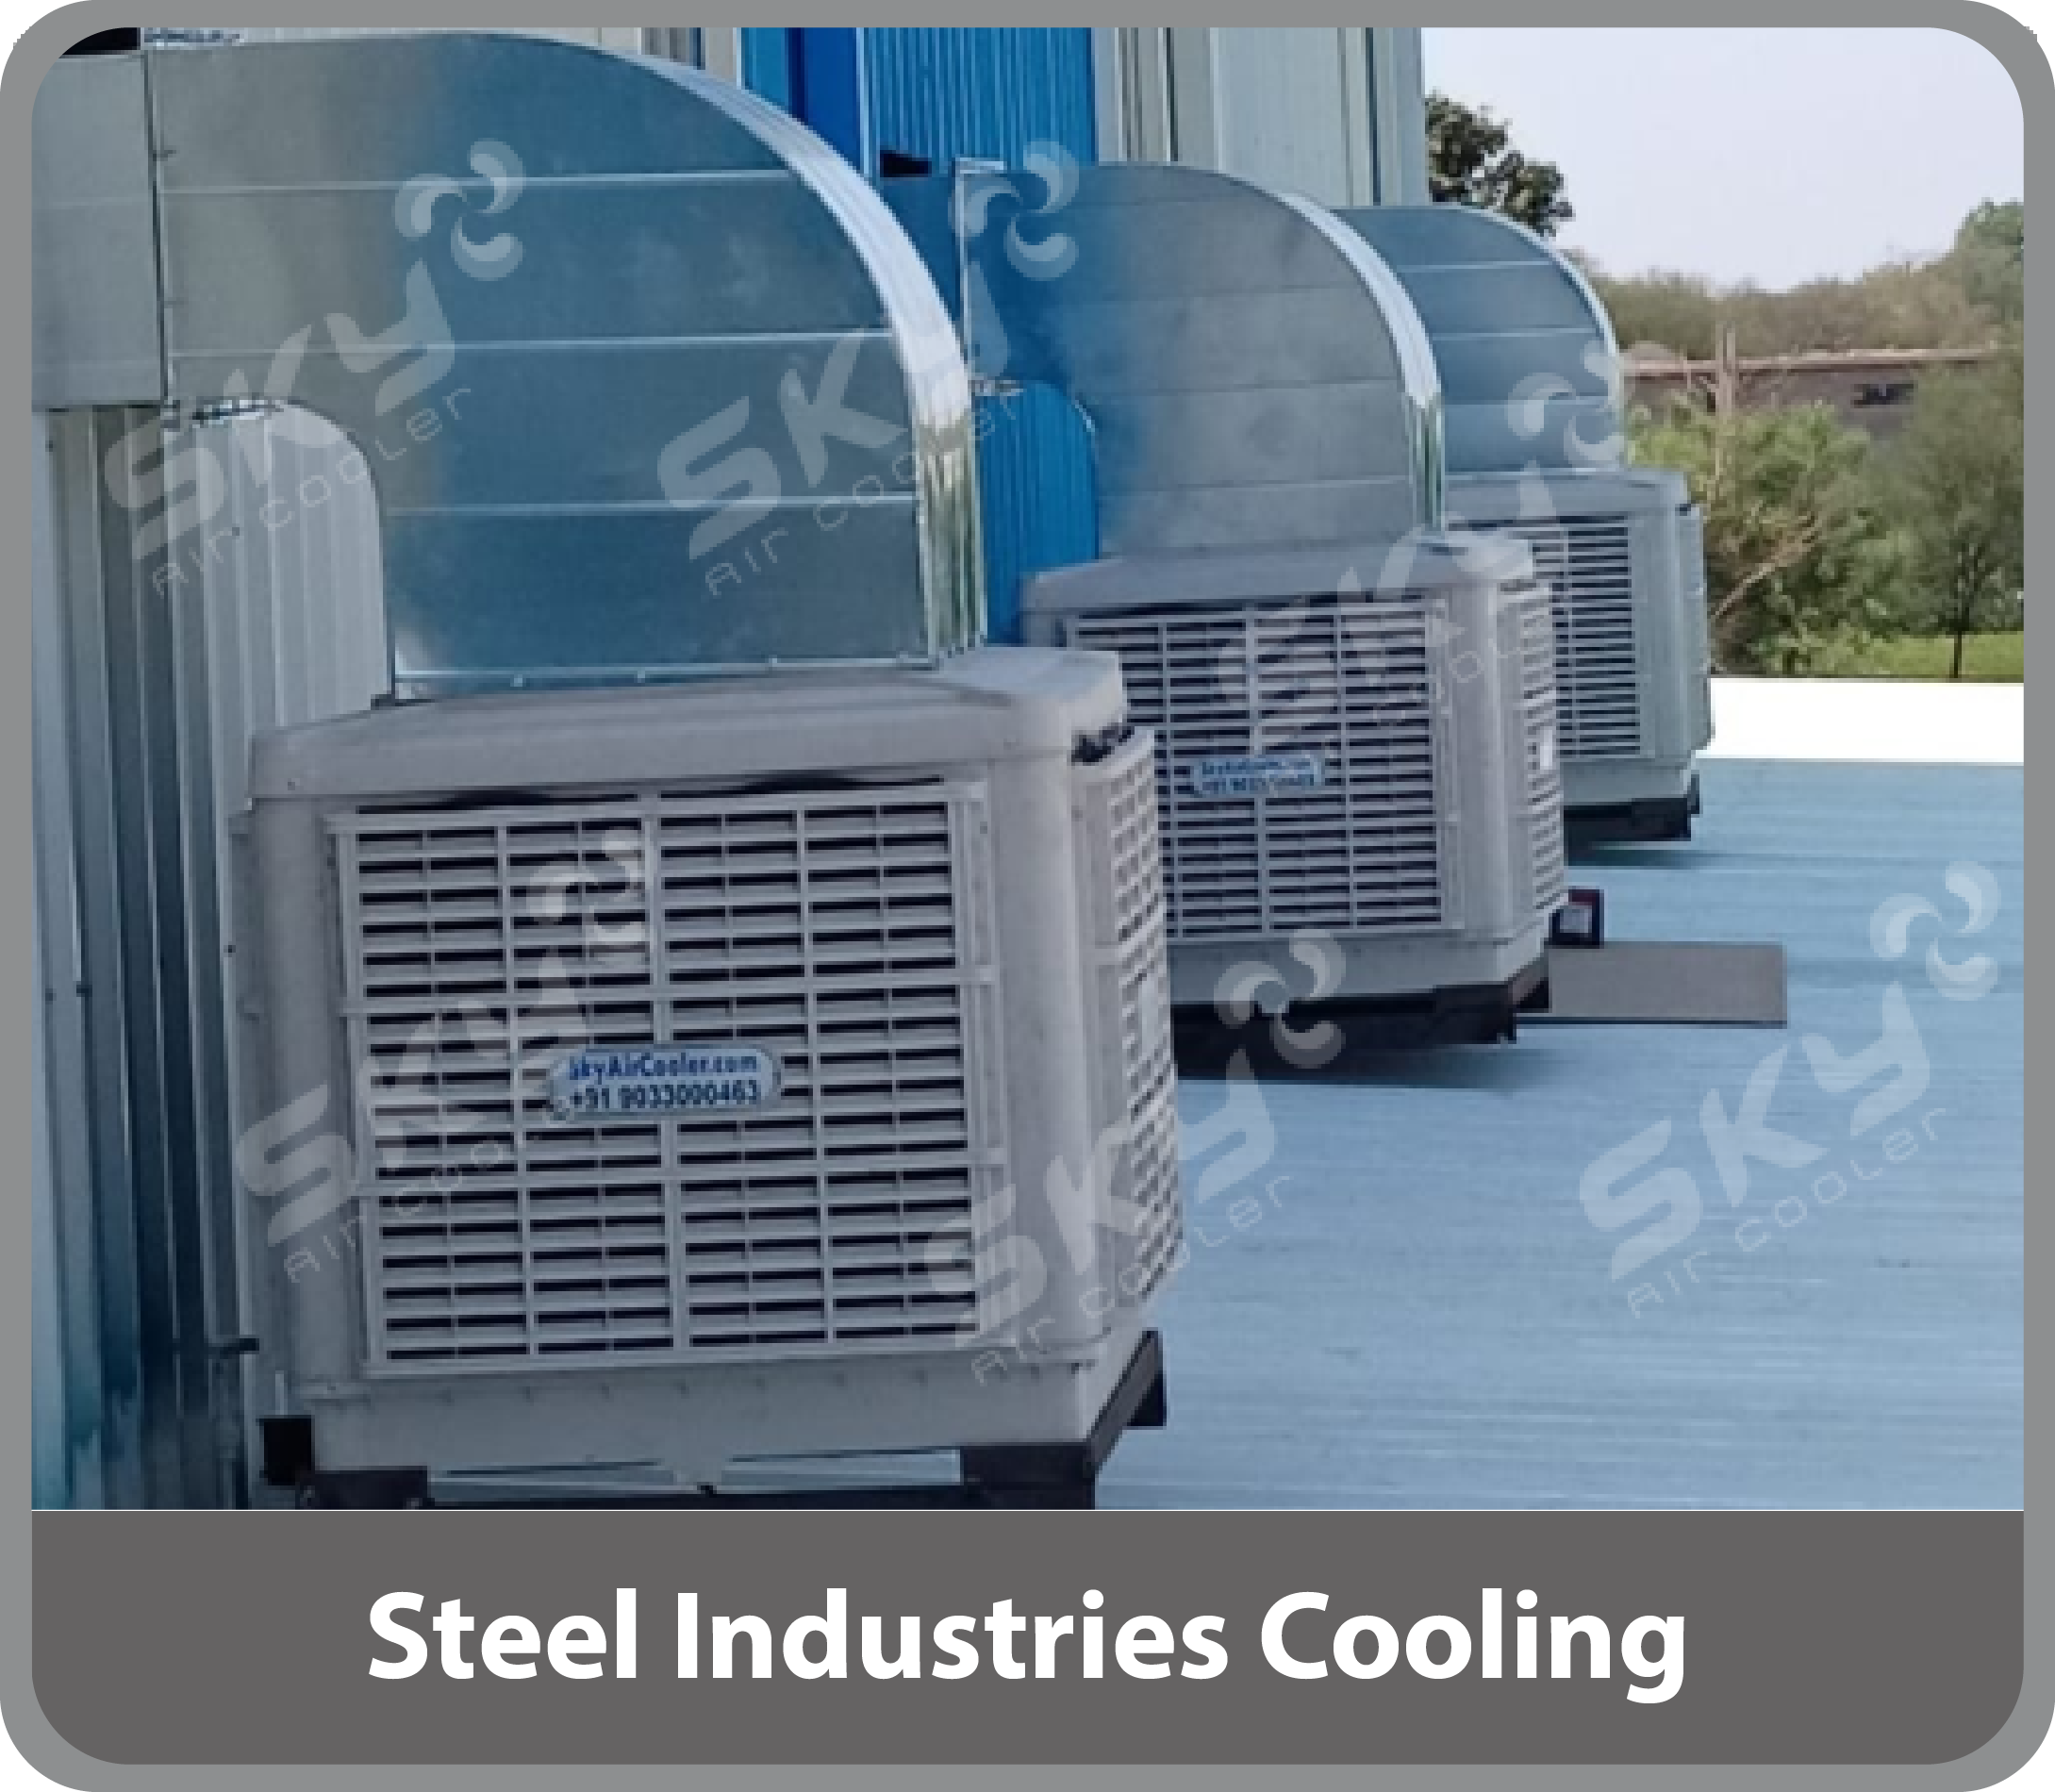 Steel Industries Cooling